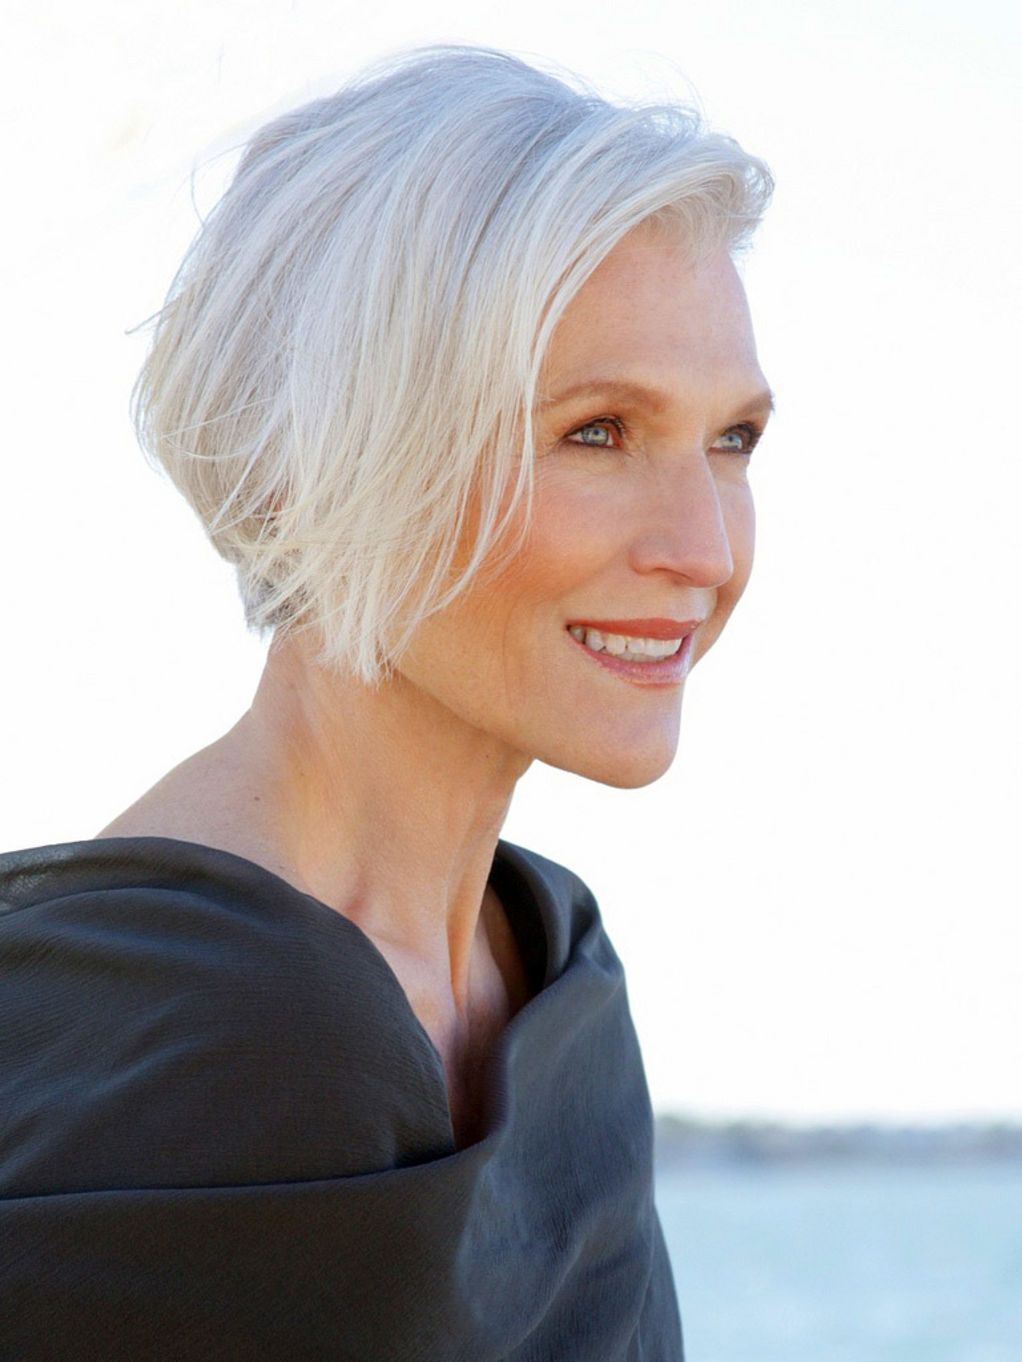 Stain away how to deyellow grey hair and become a silver frizz